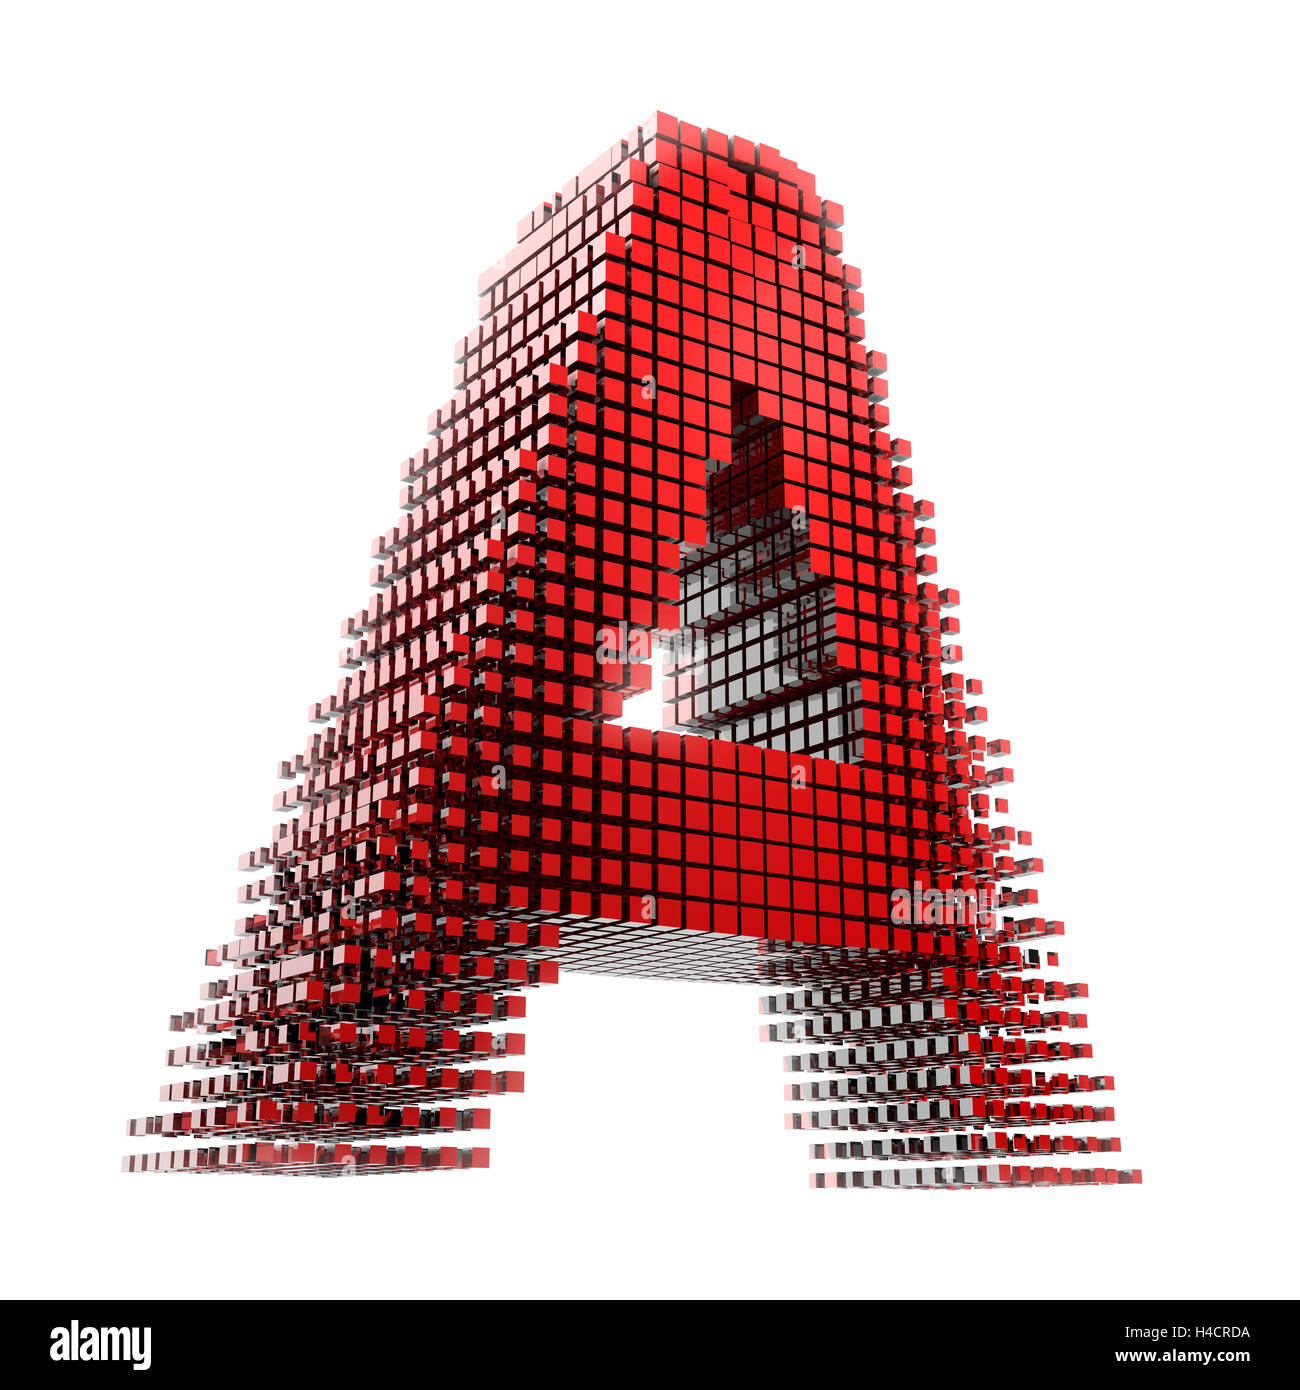 D Letter Of A In Red Material Fragments Digitally In Front Of White